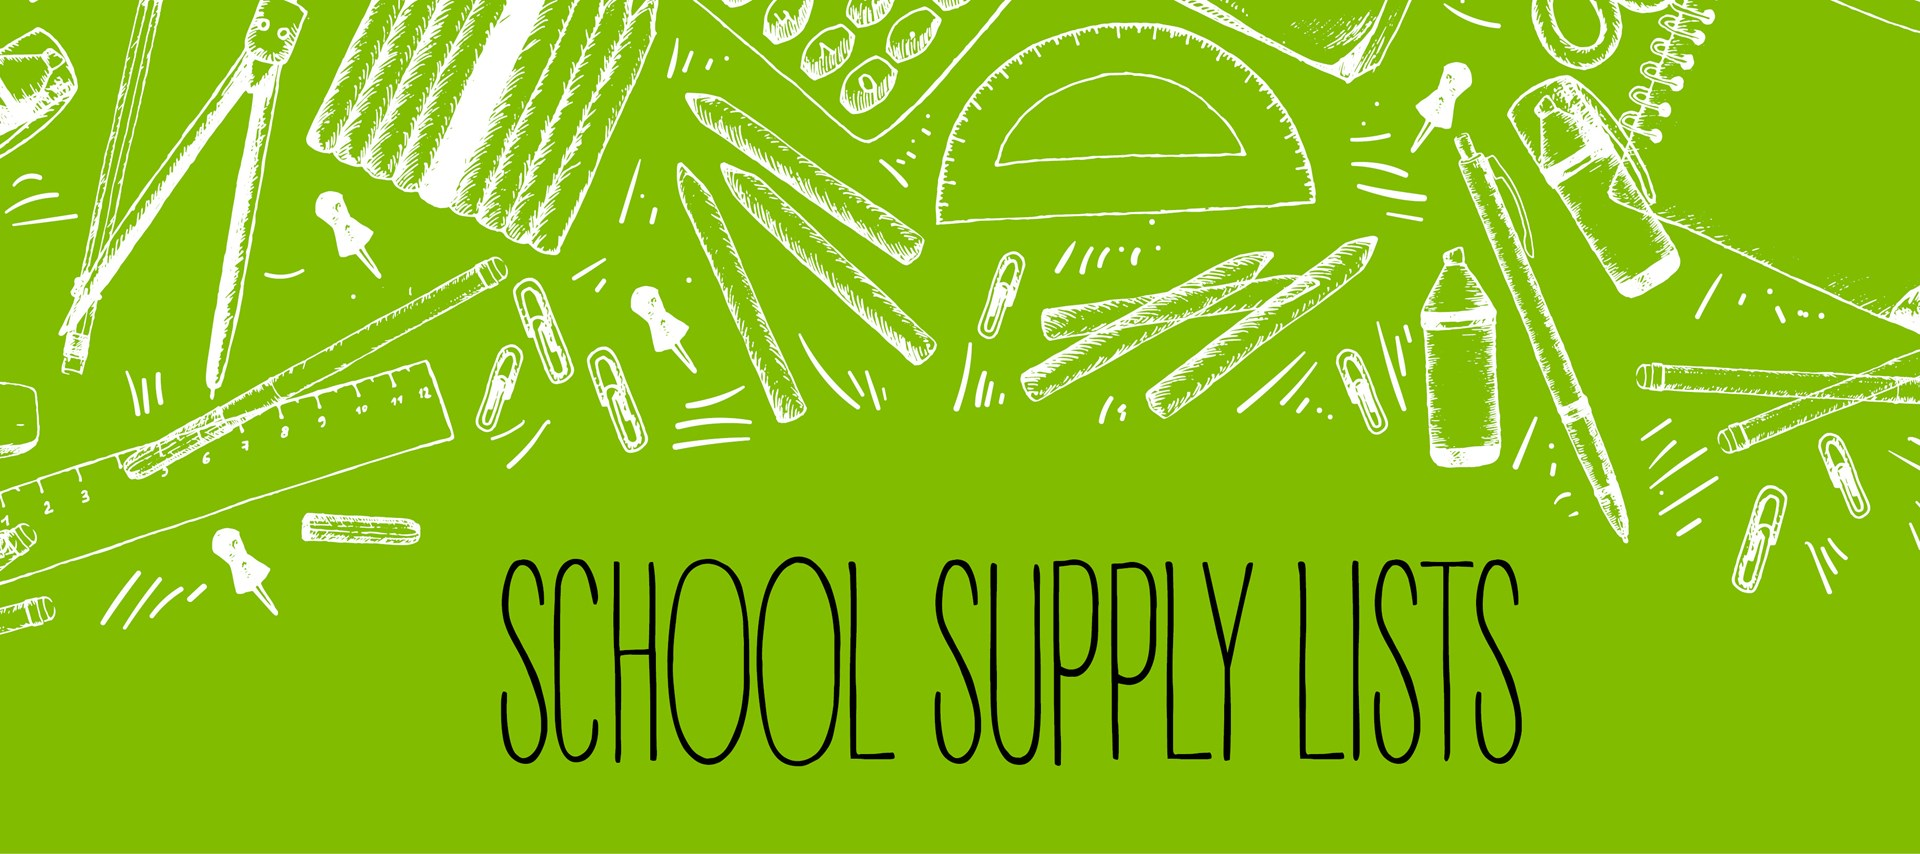 Pleasant Hill School Supply List